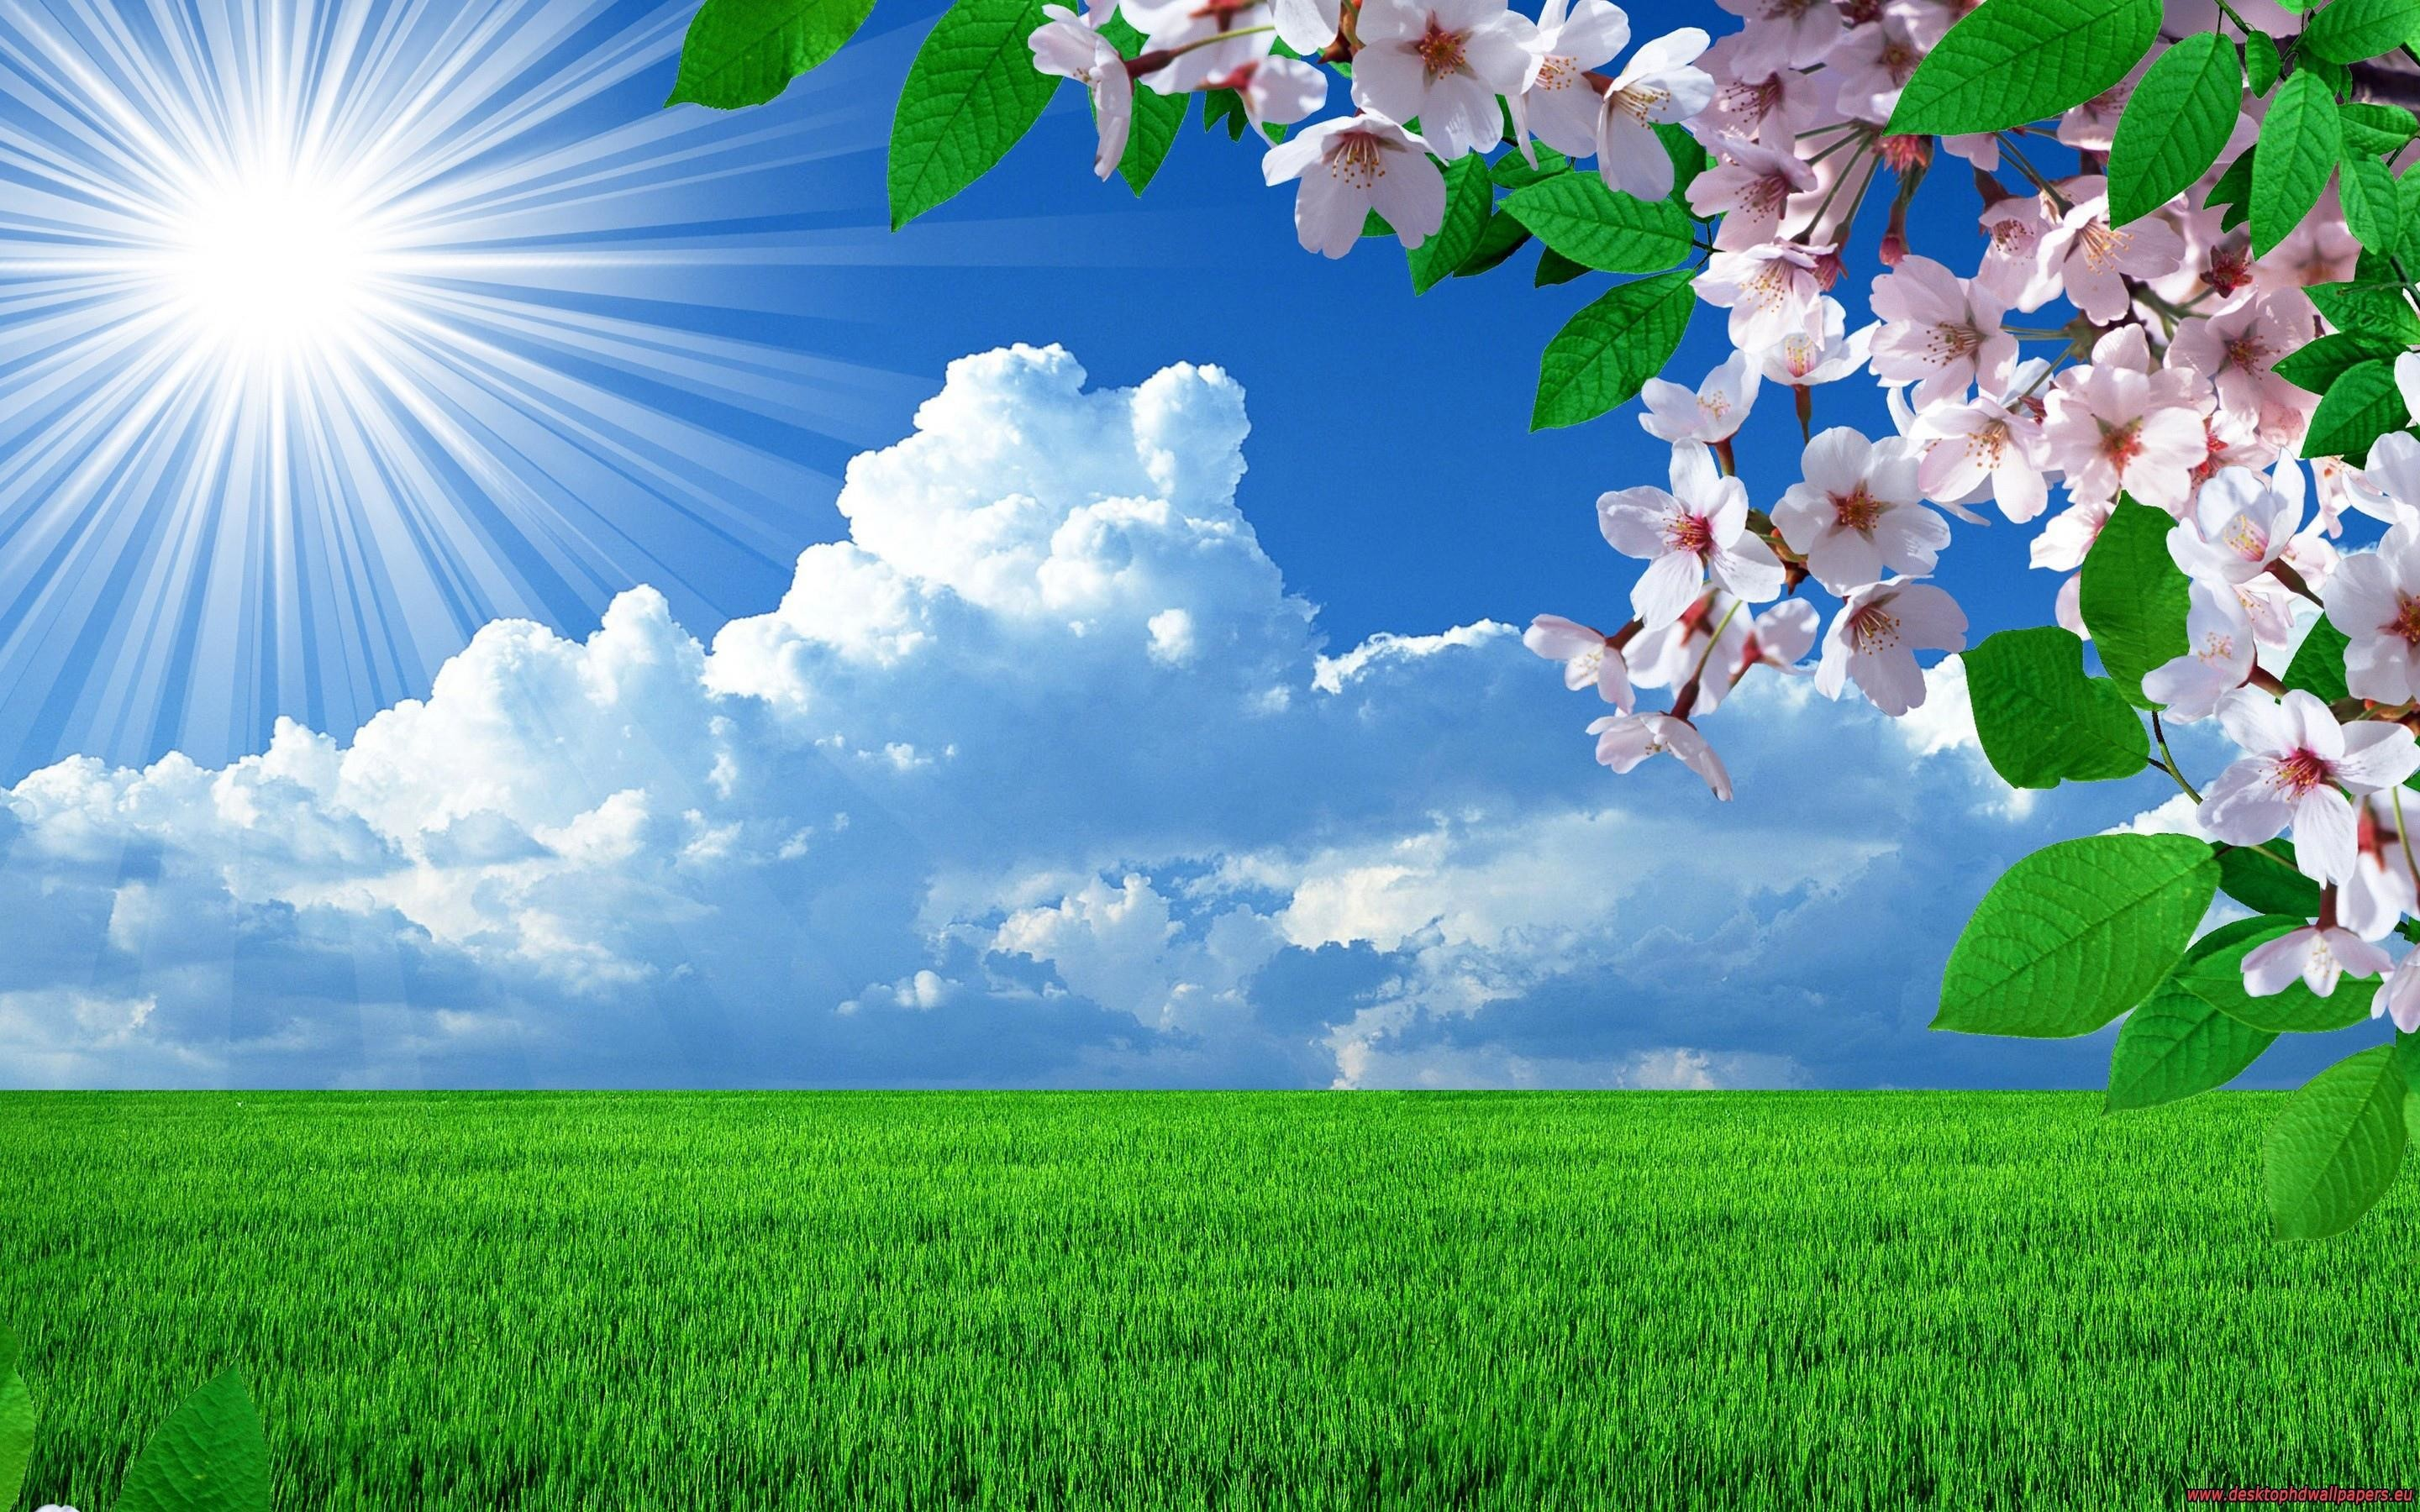 2880x1800 HD Nature Spring Flowers Landscapes Trees Sky Landscape Background Images  Wallpaper